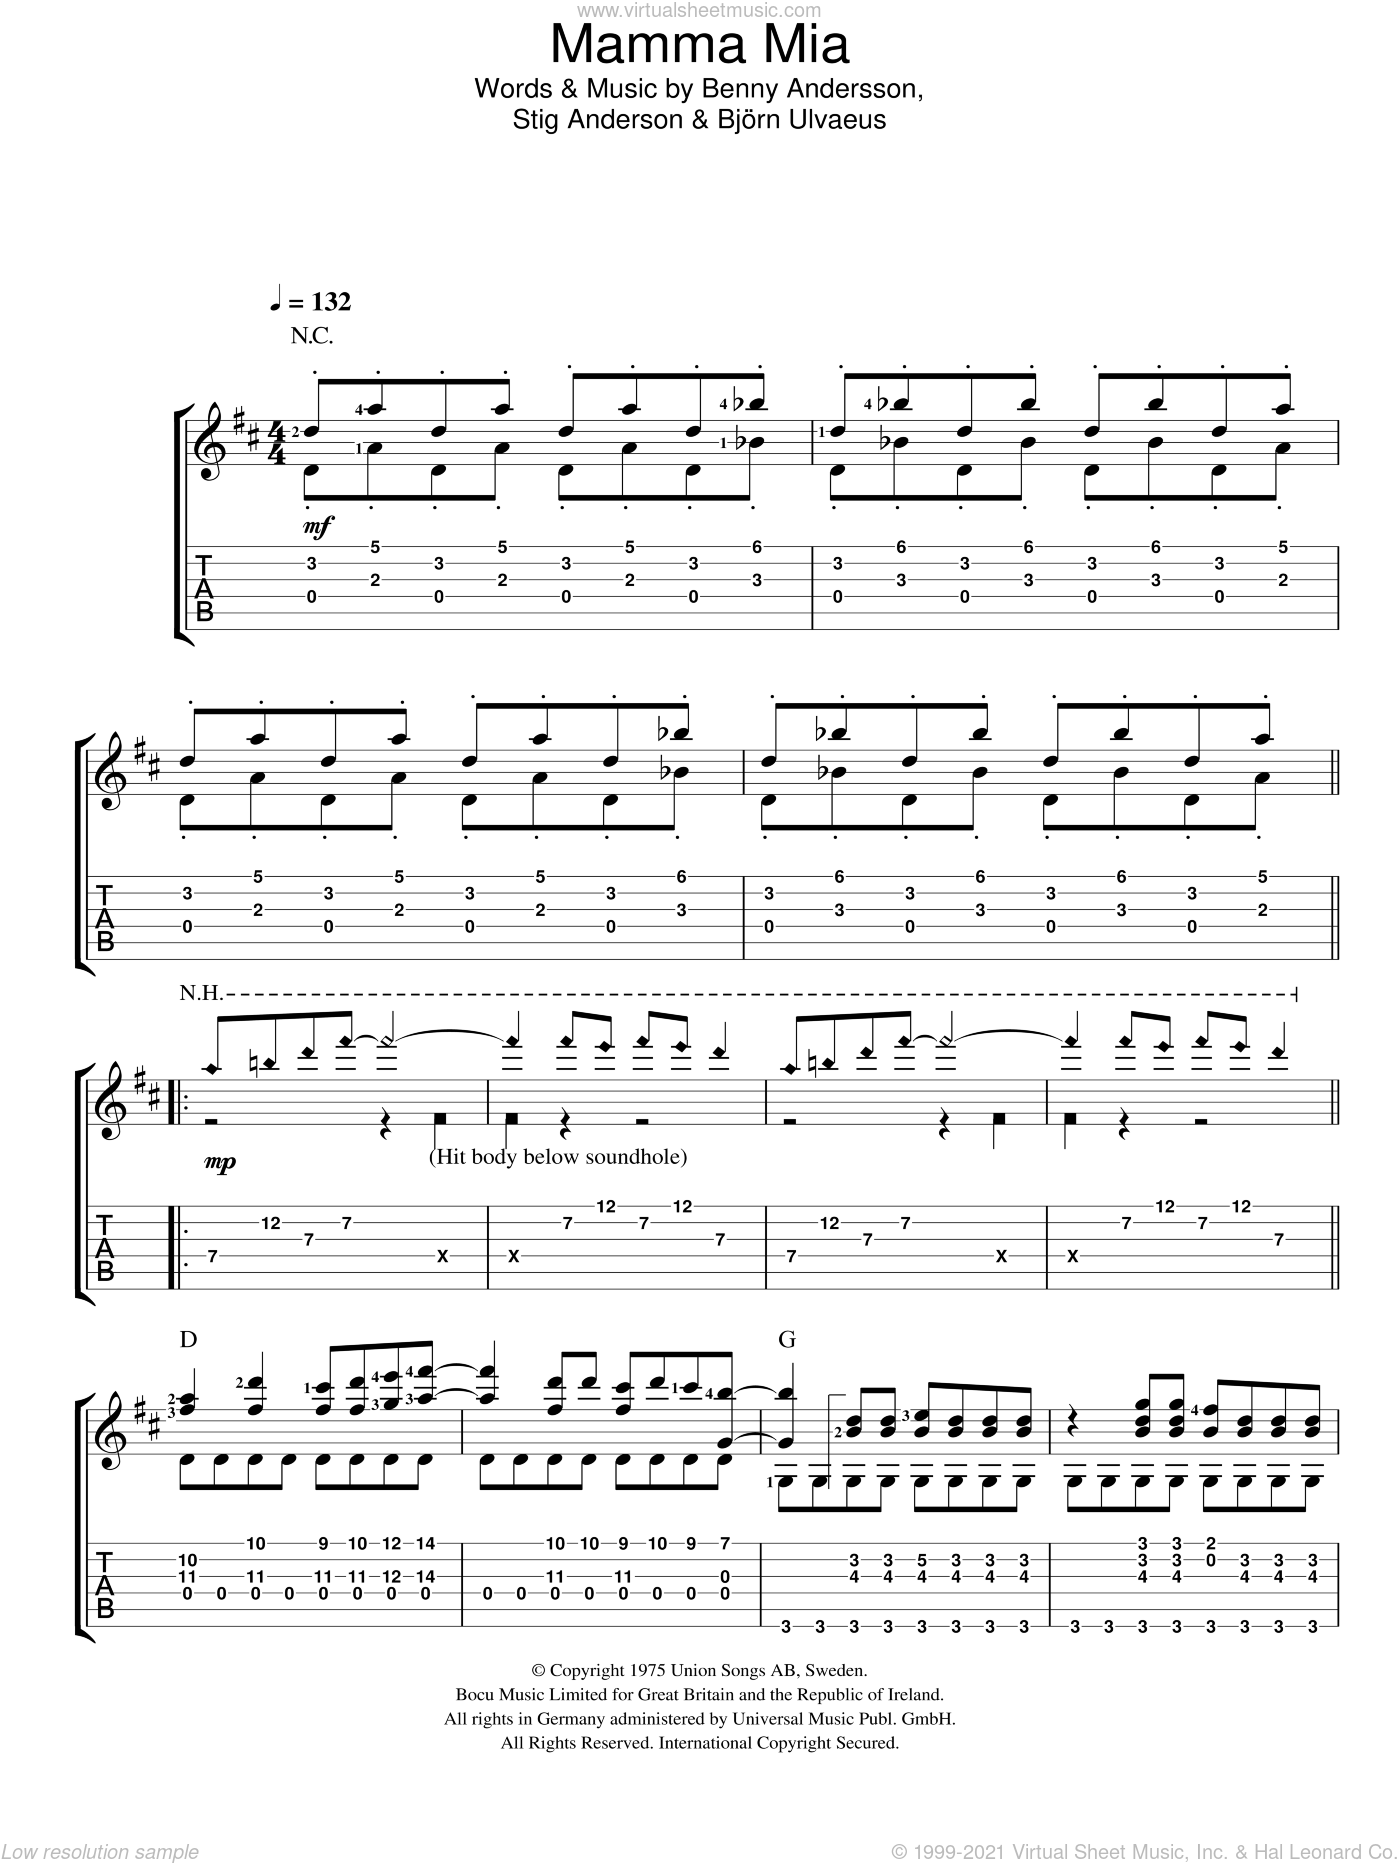 Mamma Mia sheet music for guitar solo (easy tablature) by Stig Anderson, ABBA, Benny Andersson and Bjorn Ulvaeus. Score Image Preview.